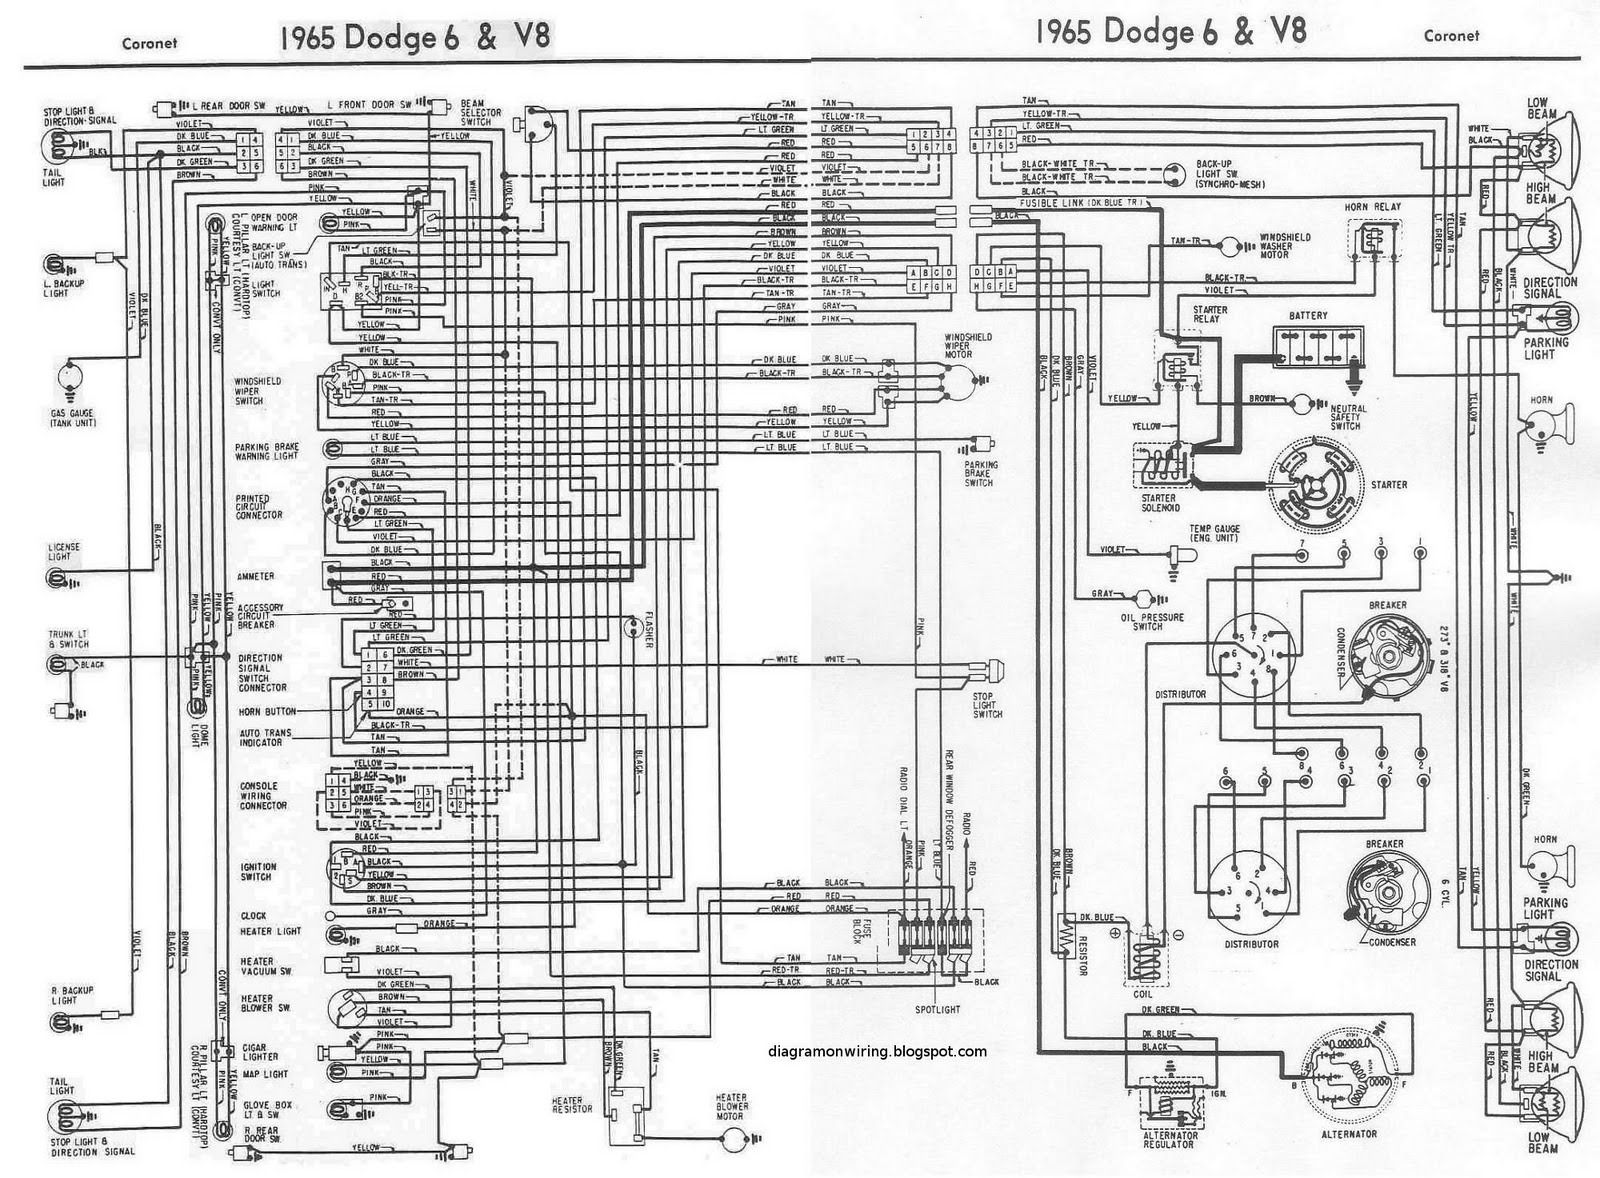 1967 dodge alternator wiring wiring diagram repair guides1966 plymouth alternator wiring electrical wiring diagram1967 dodge alternator [ 1600 x 1178 Pixel ]